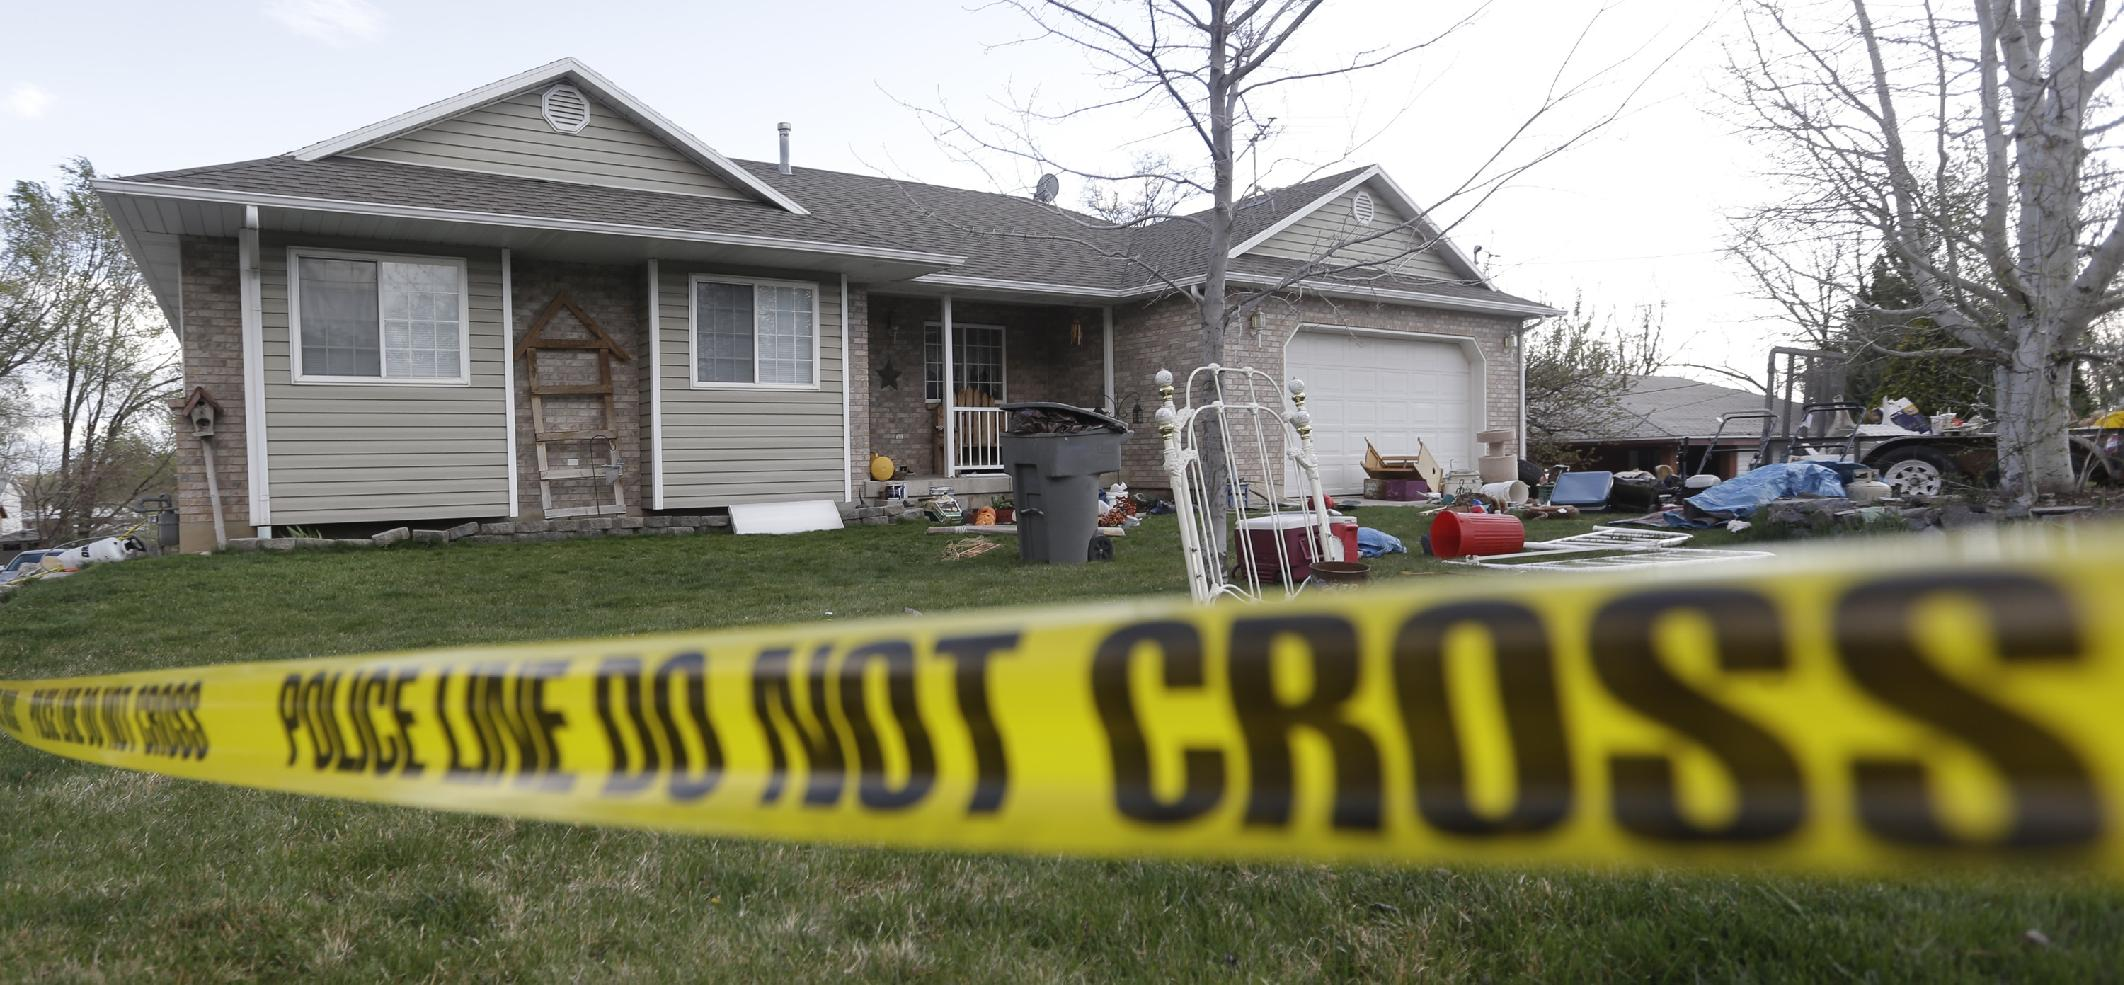 Autopsies completed on 7 babies found in Utah garage